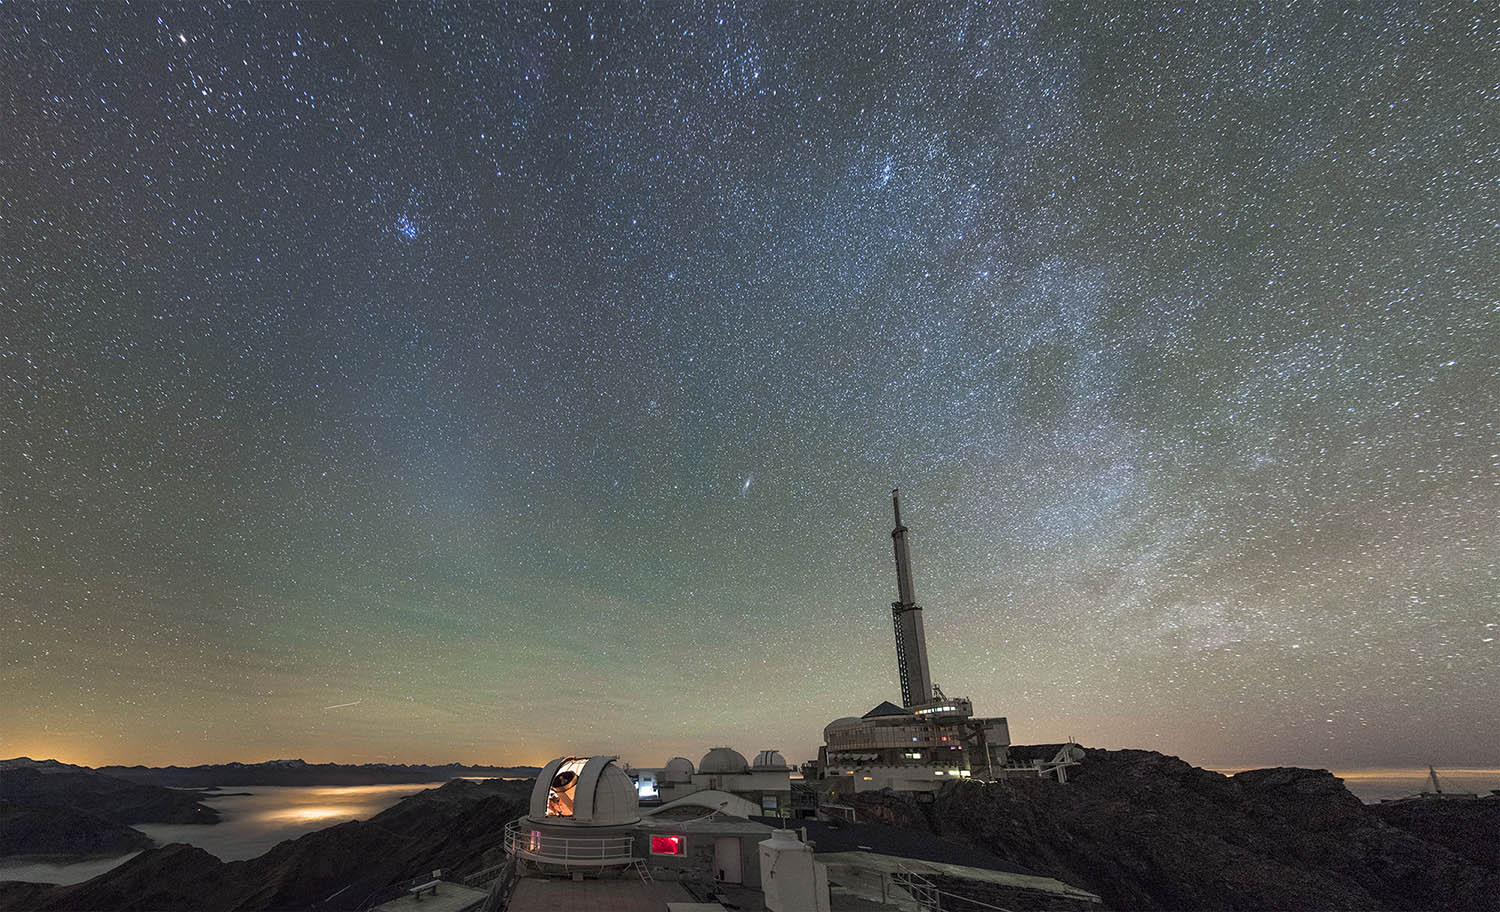 pic du midi airglow zodiacallight